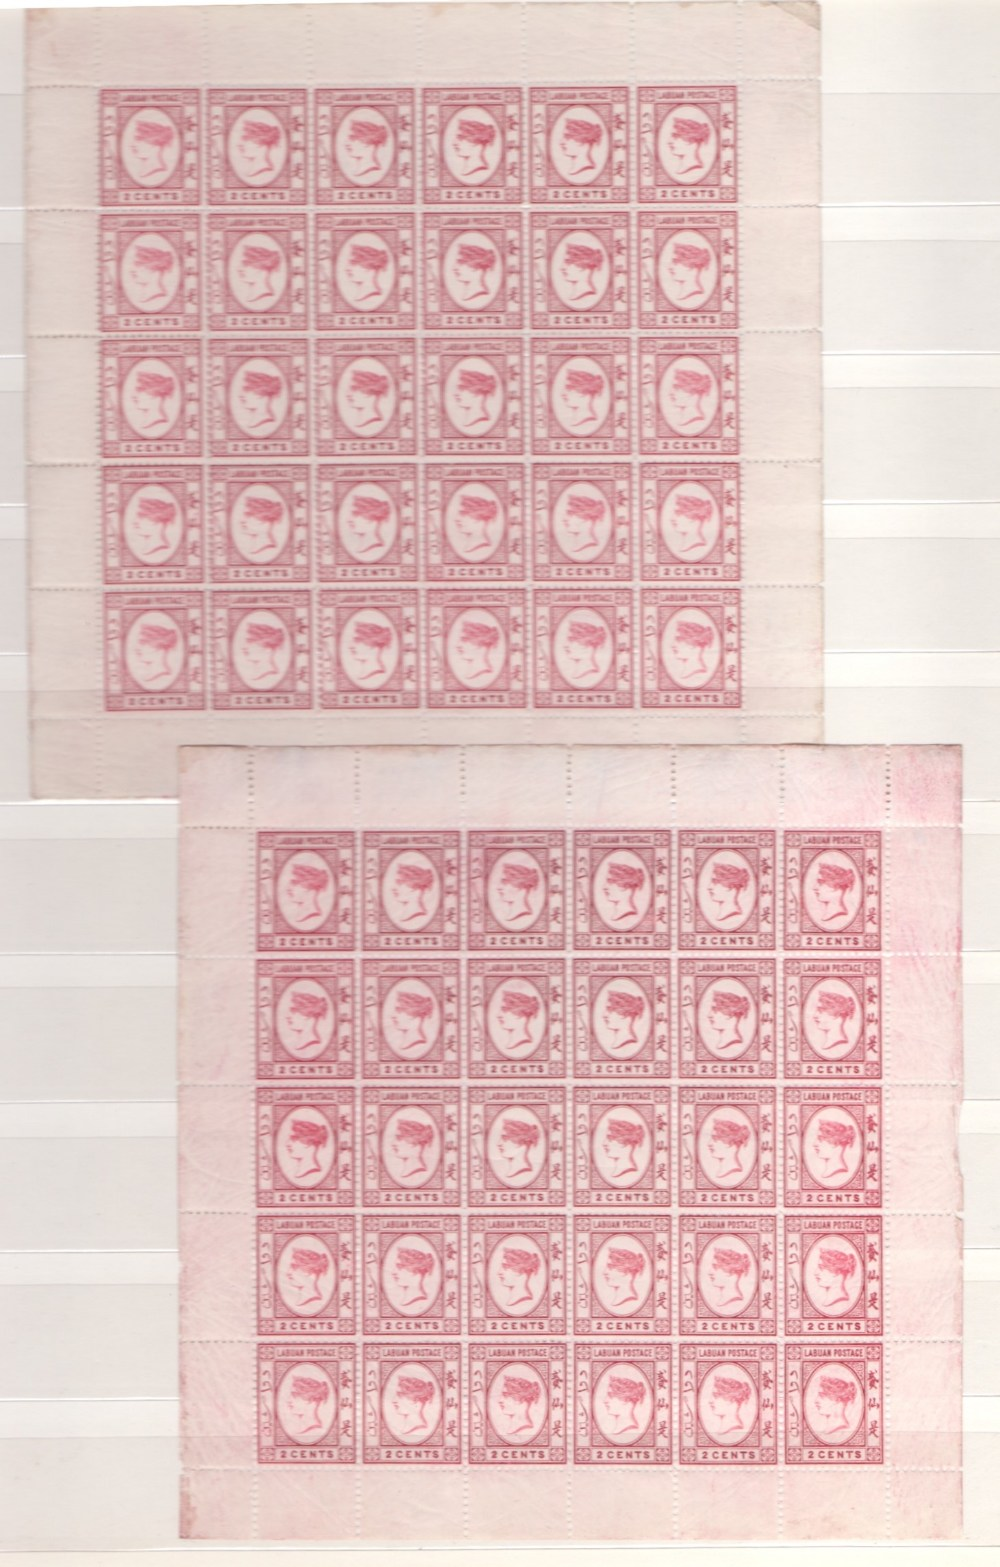 Lot 17 - STAMPS : BRITISH COMMONWEALTH, two stockbooks with some useful,